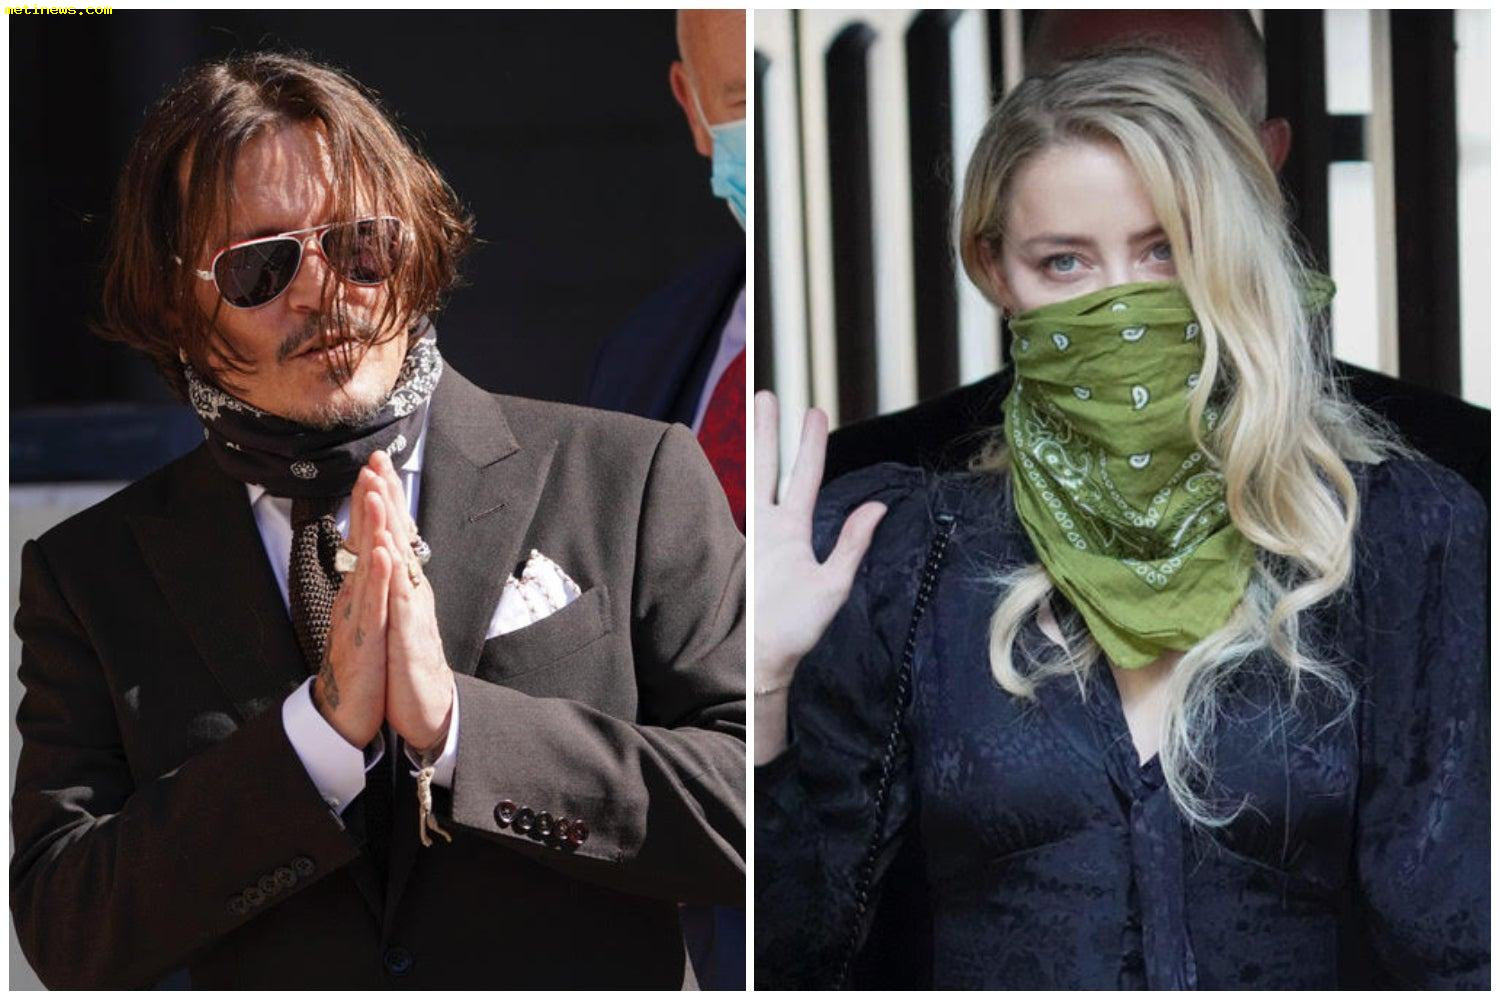 Johnny Depp 'threw a phone' at Amber Heard because she 'defecated' in their bed